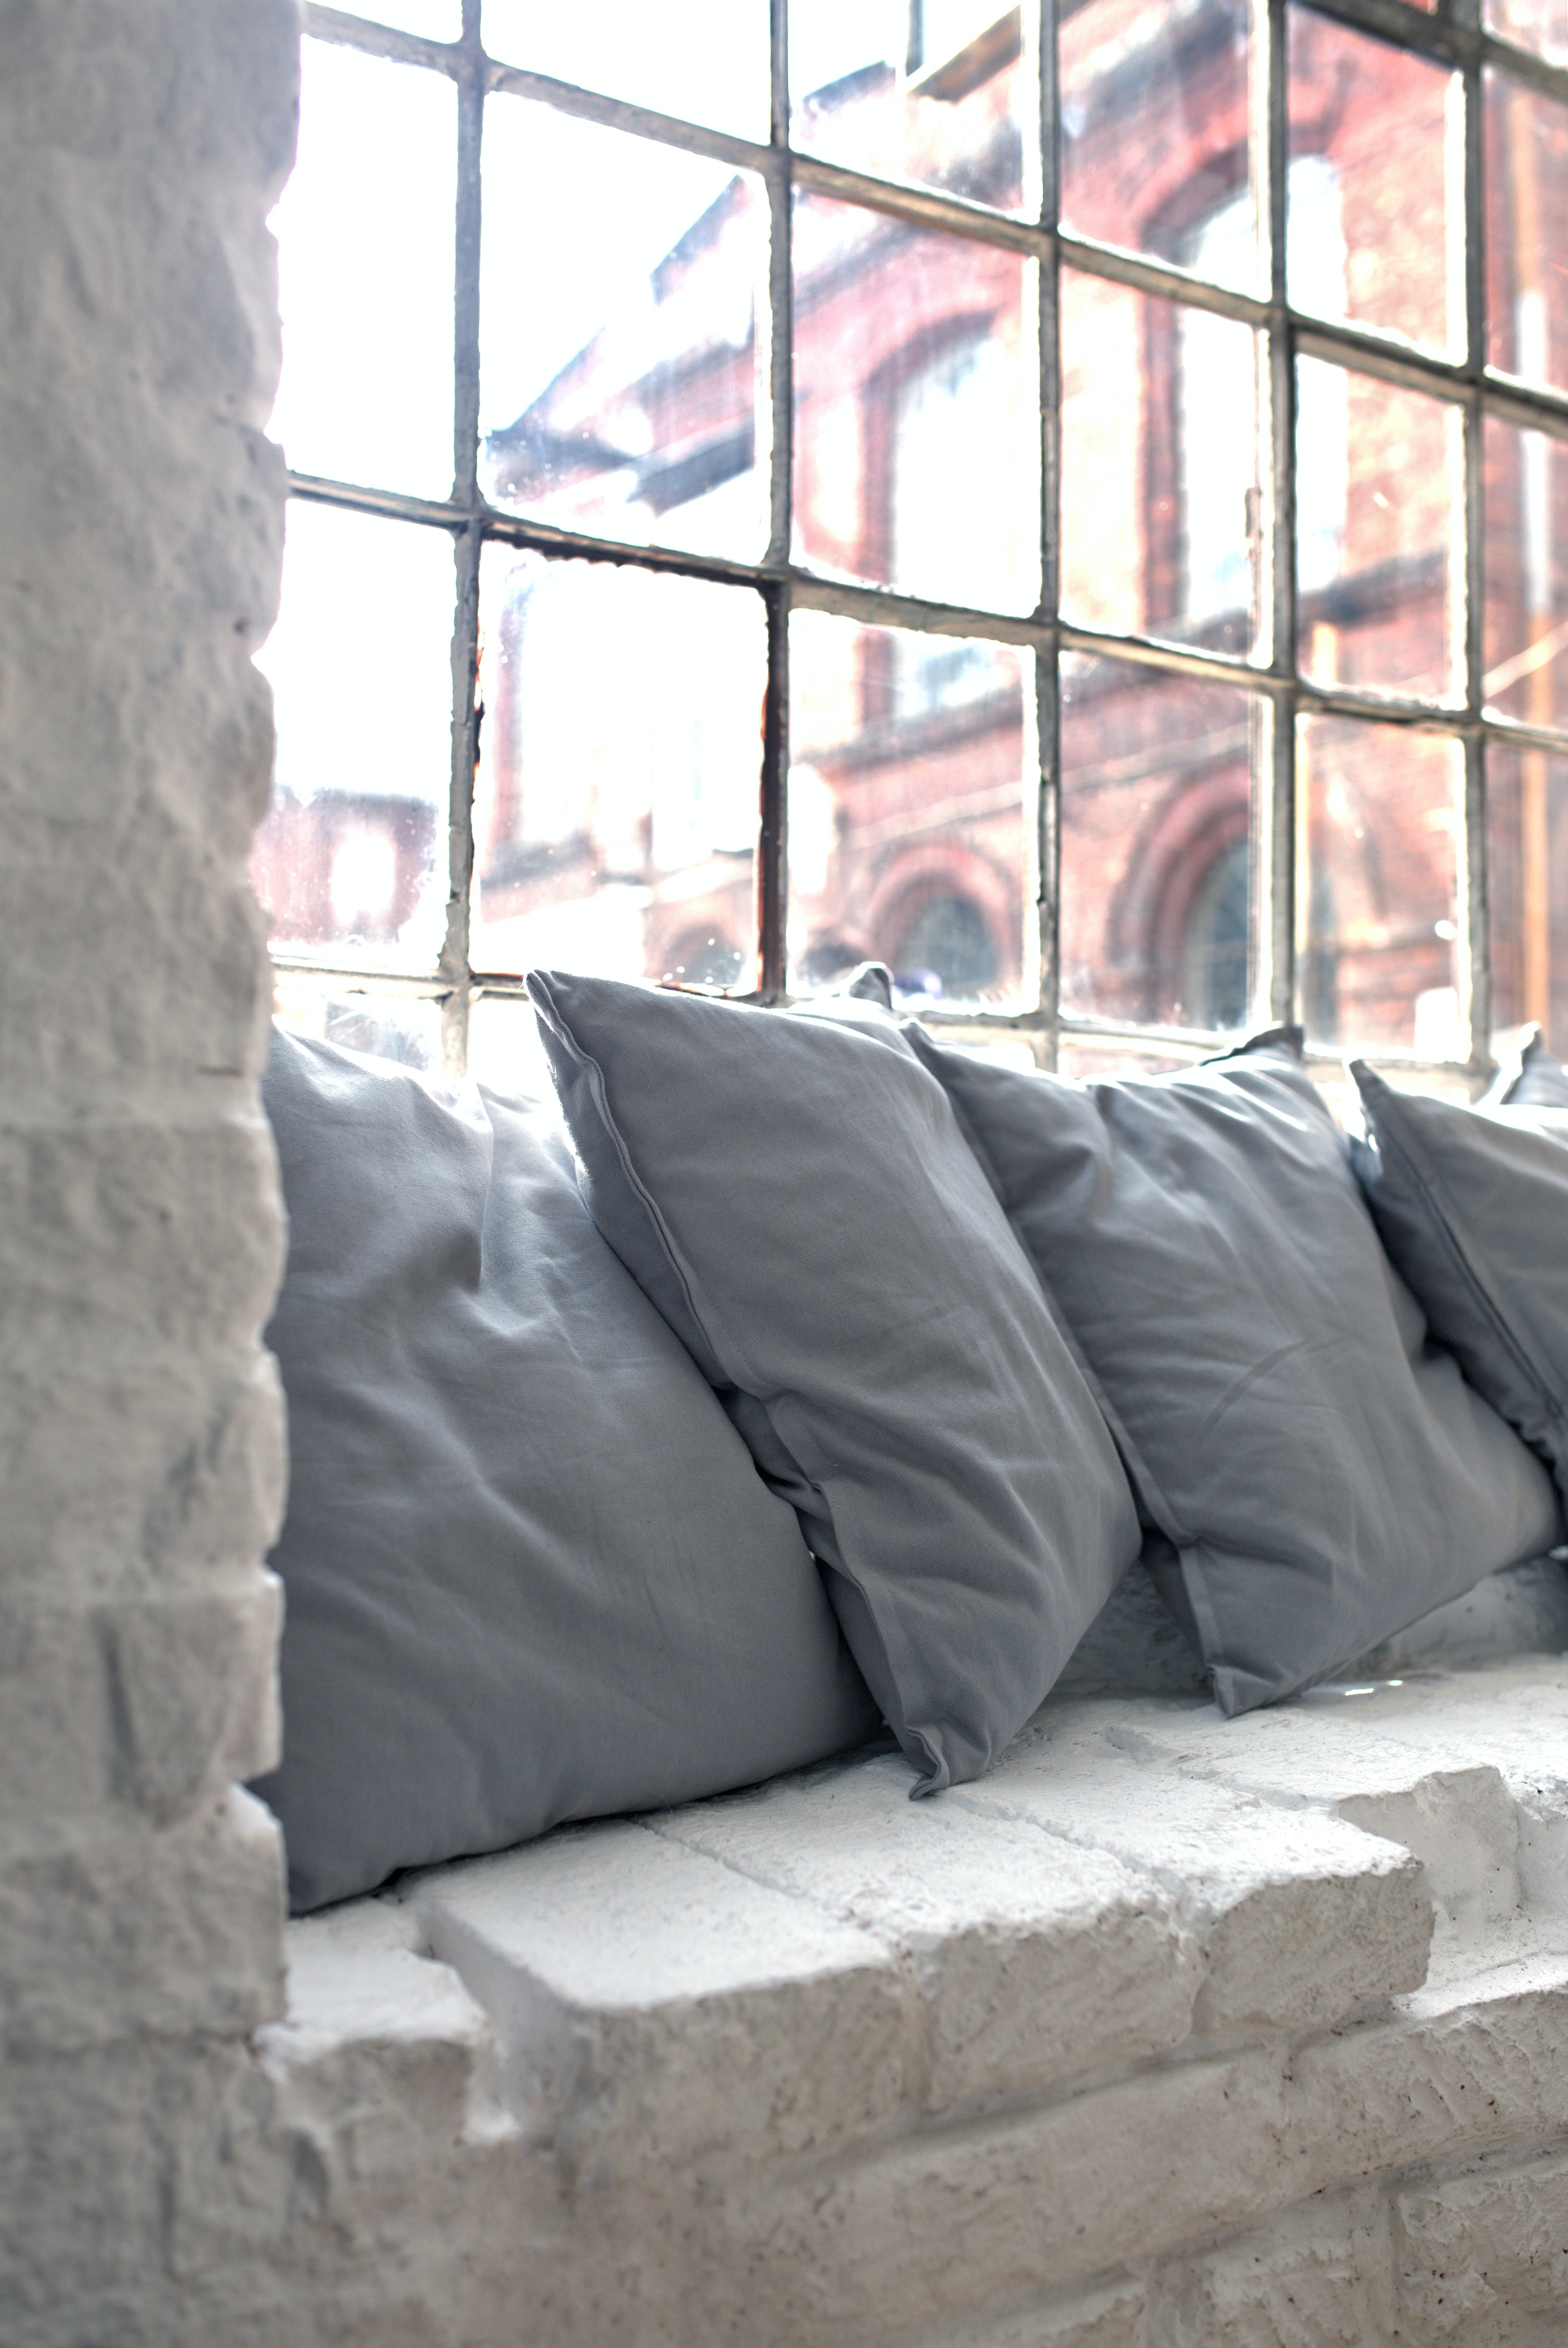 Pillows on the window